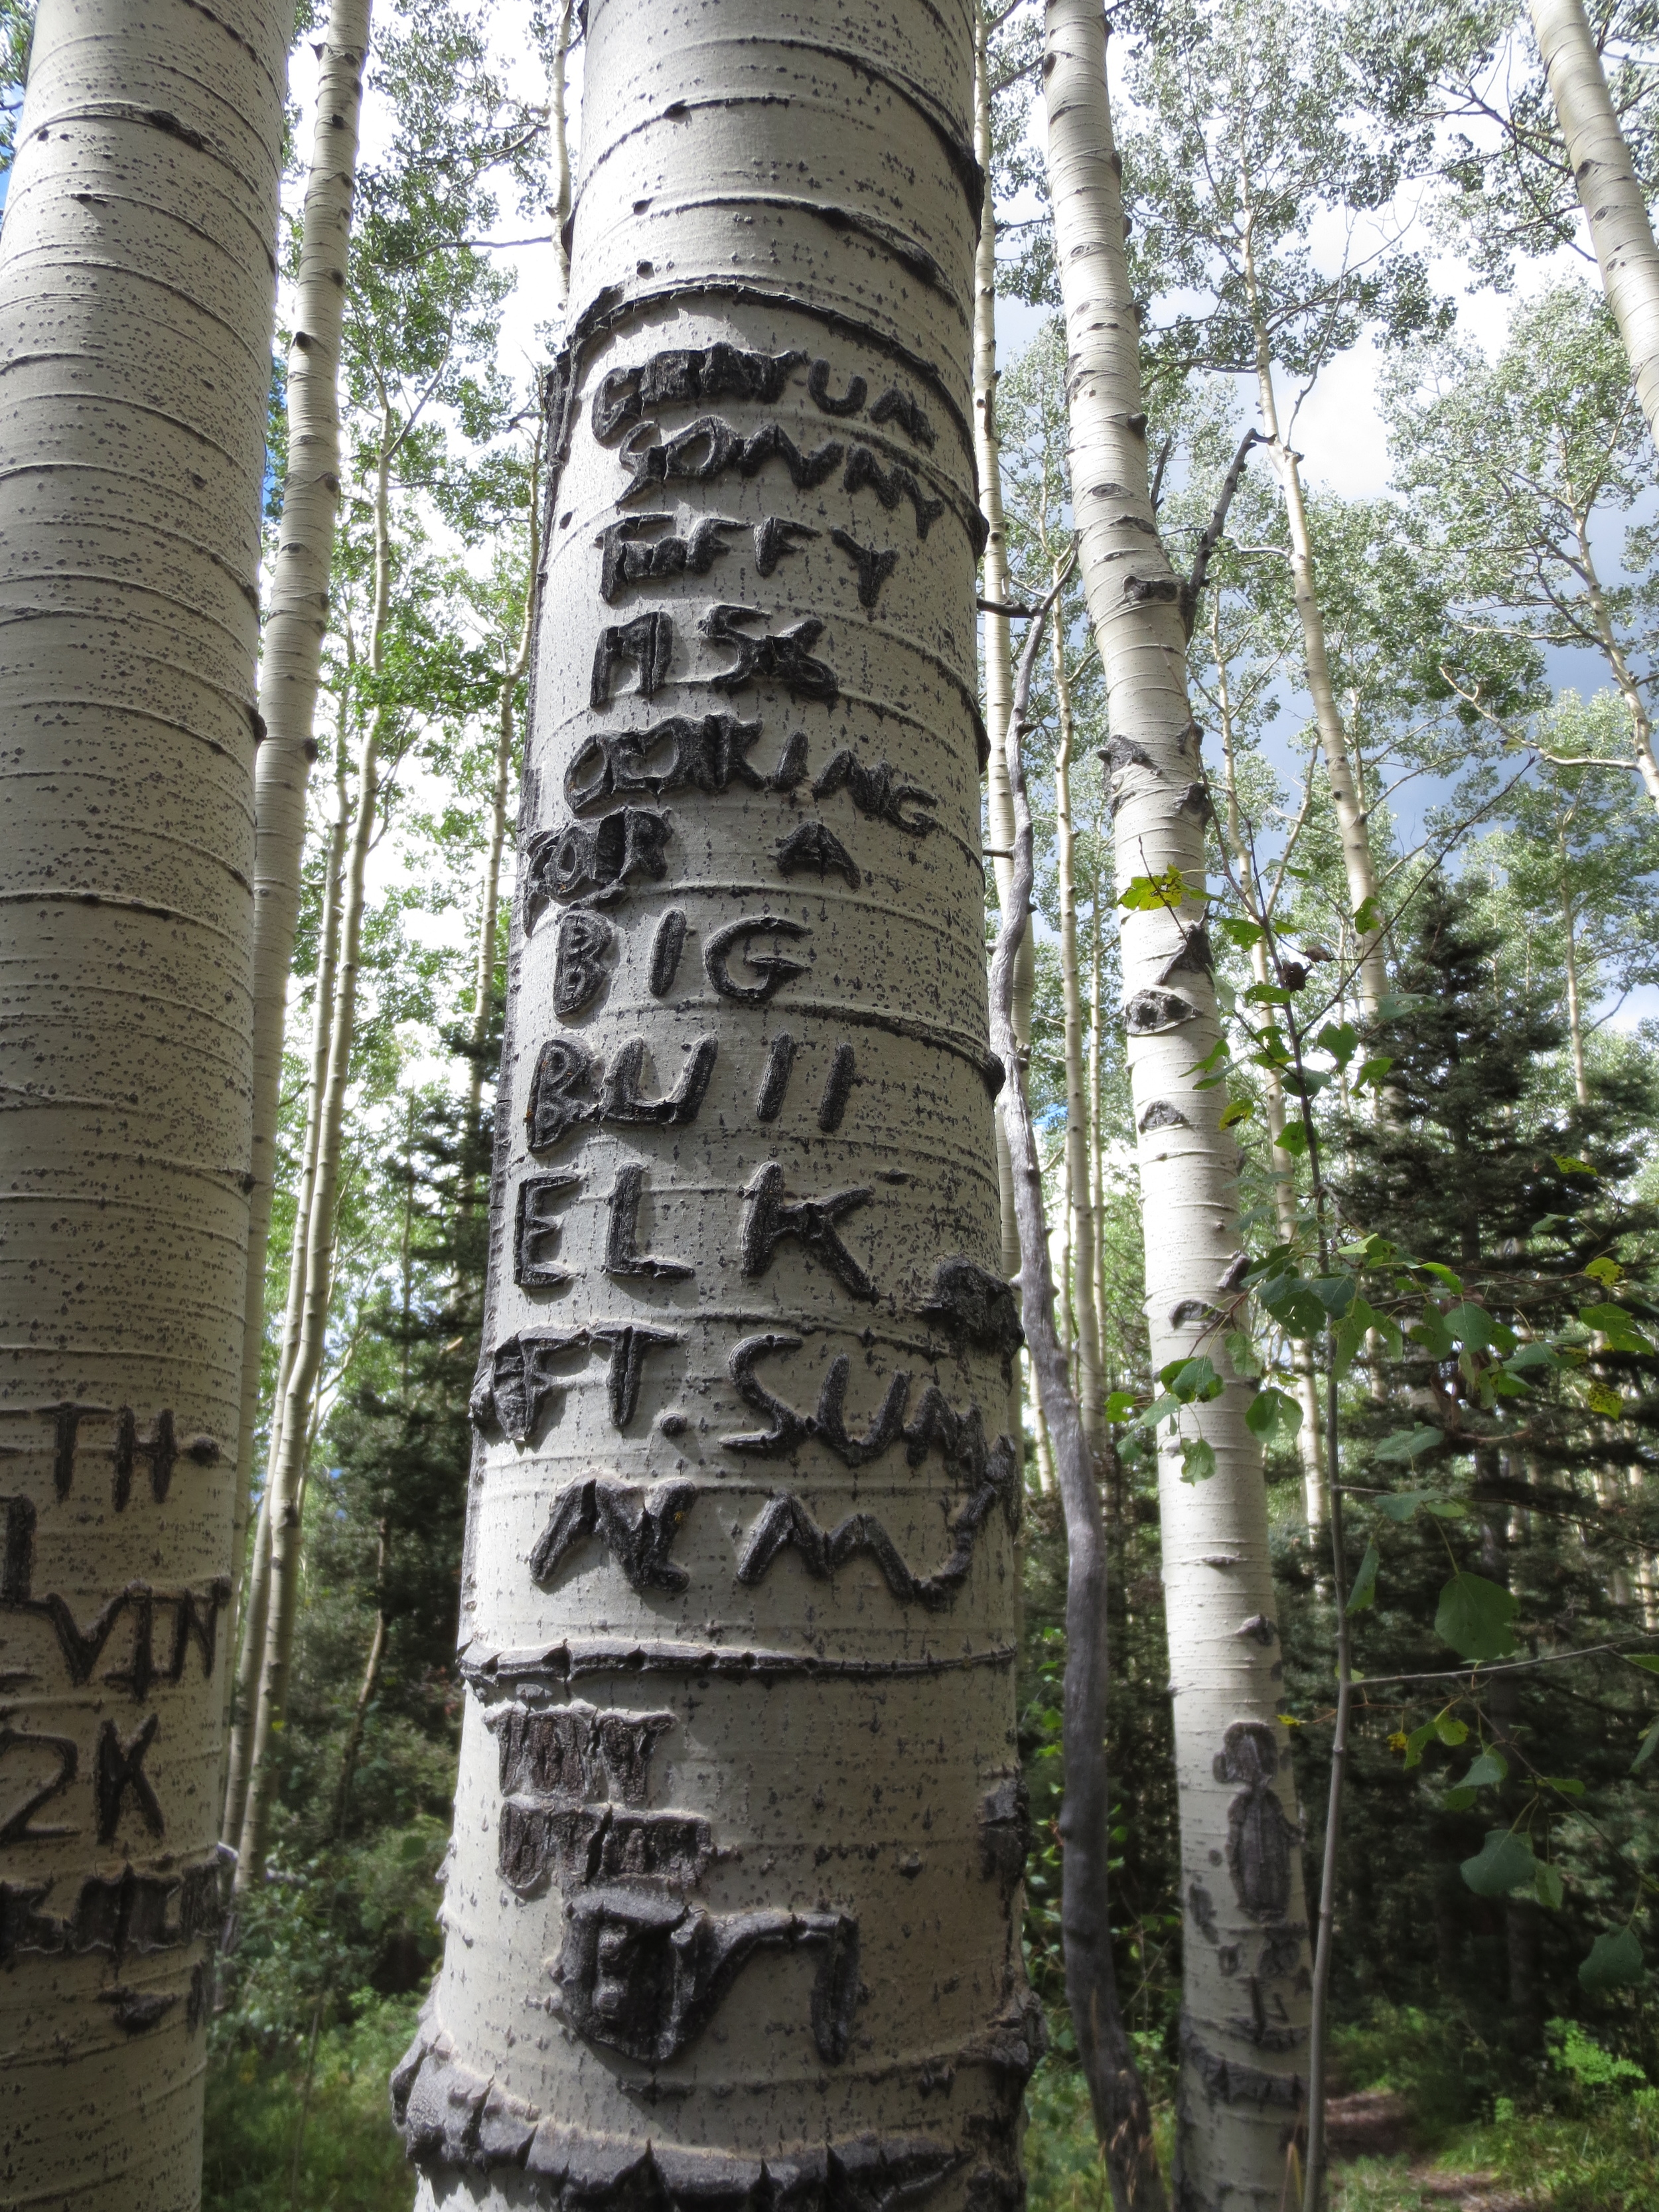 This carving is from 1956 and is apparently from some fellers looking for elk. Some things just don't change.